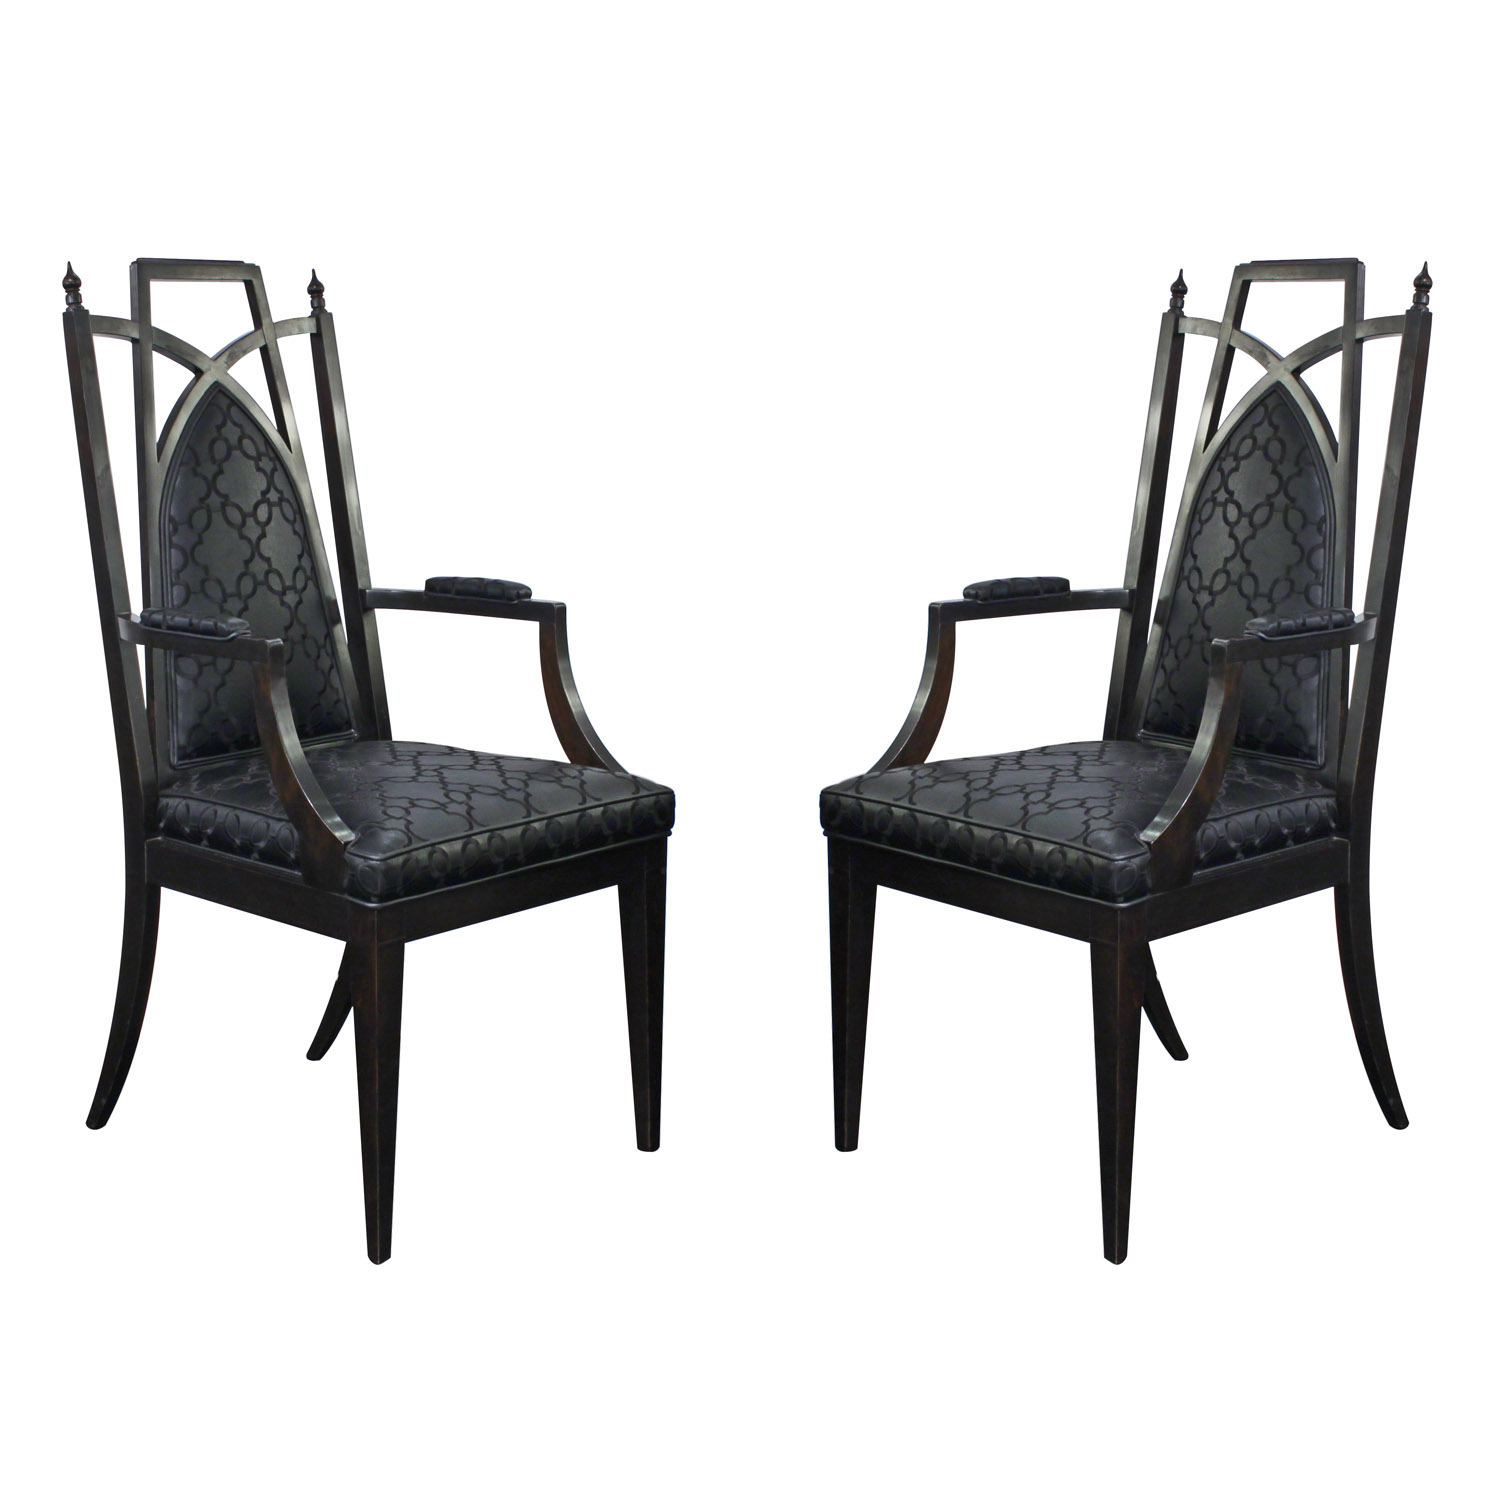 50s 55 style Mont Chinoiserie armchairs27 main hires.jpg